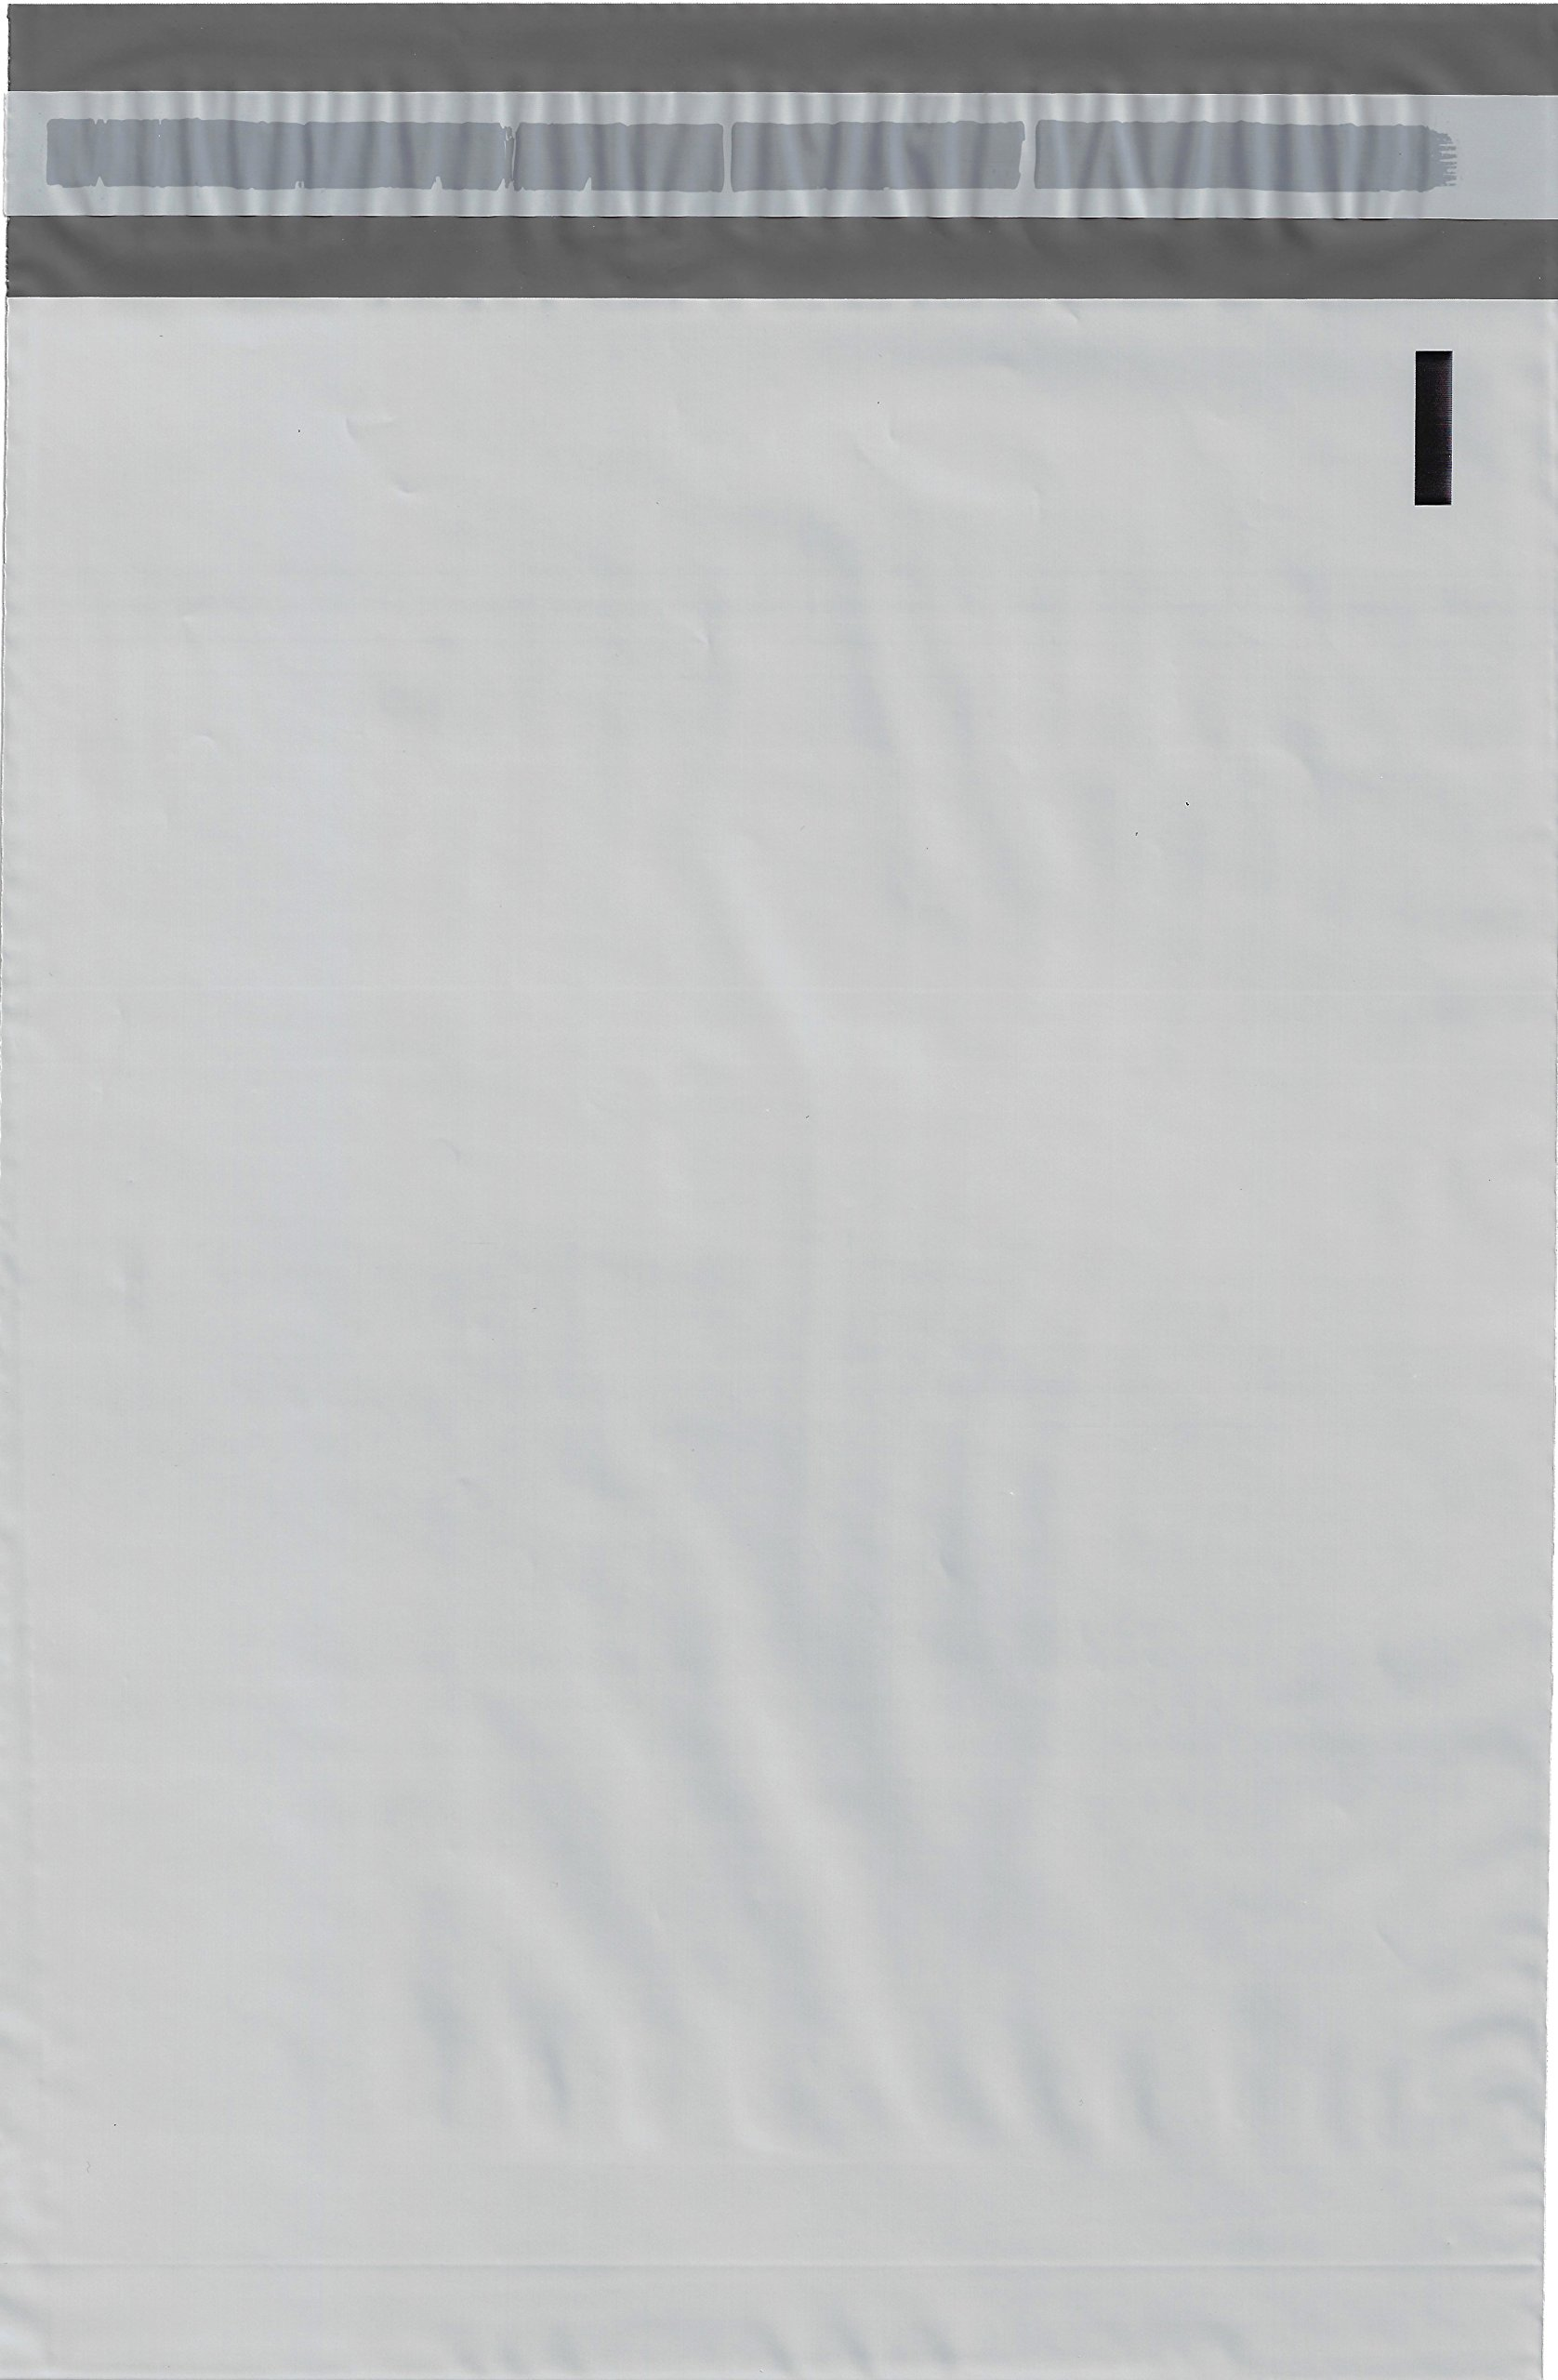 Valuemailers 2.5 Mil Poly Mailers Envelopes Bags, 10x13-inch, 100 Bags, White